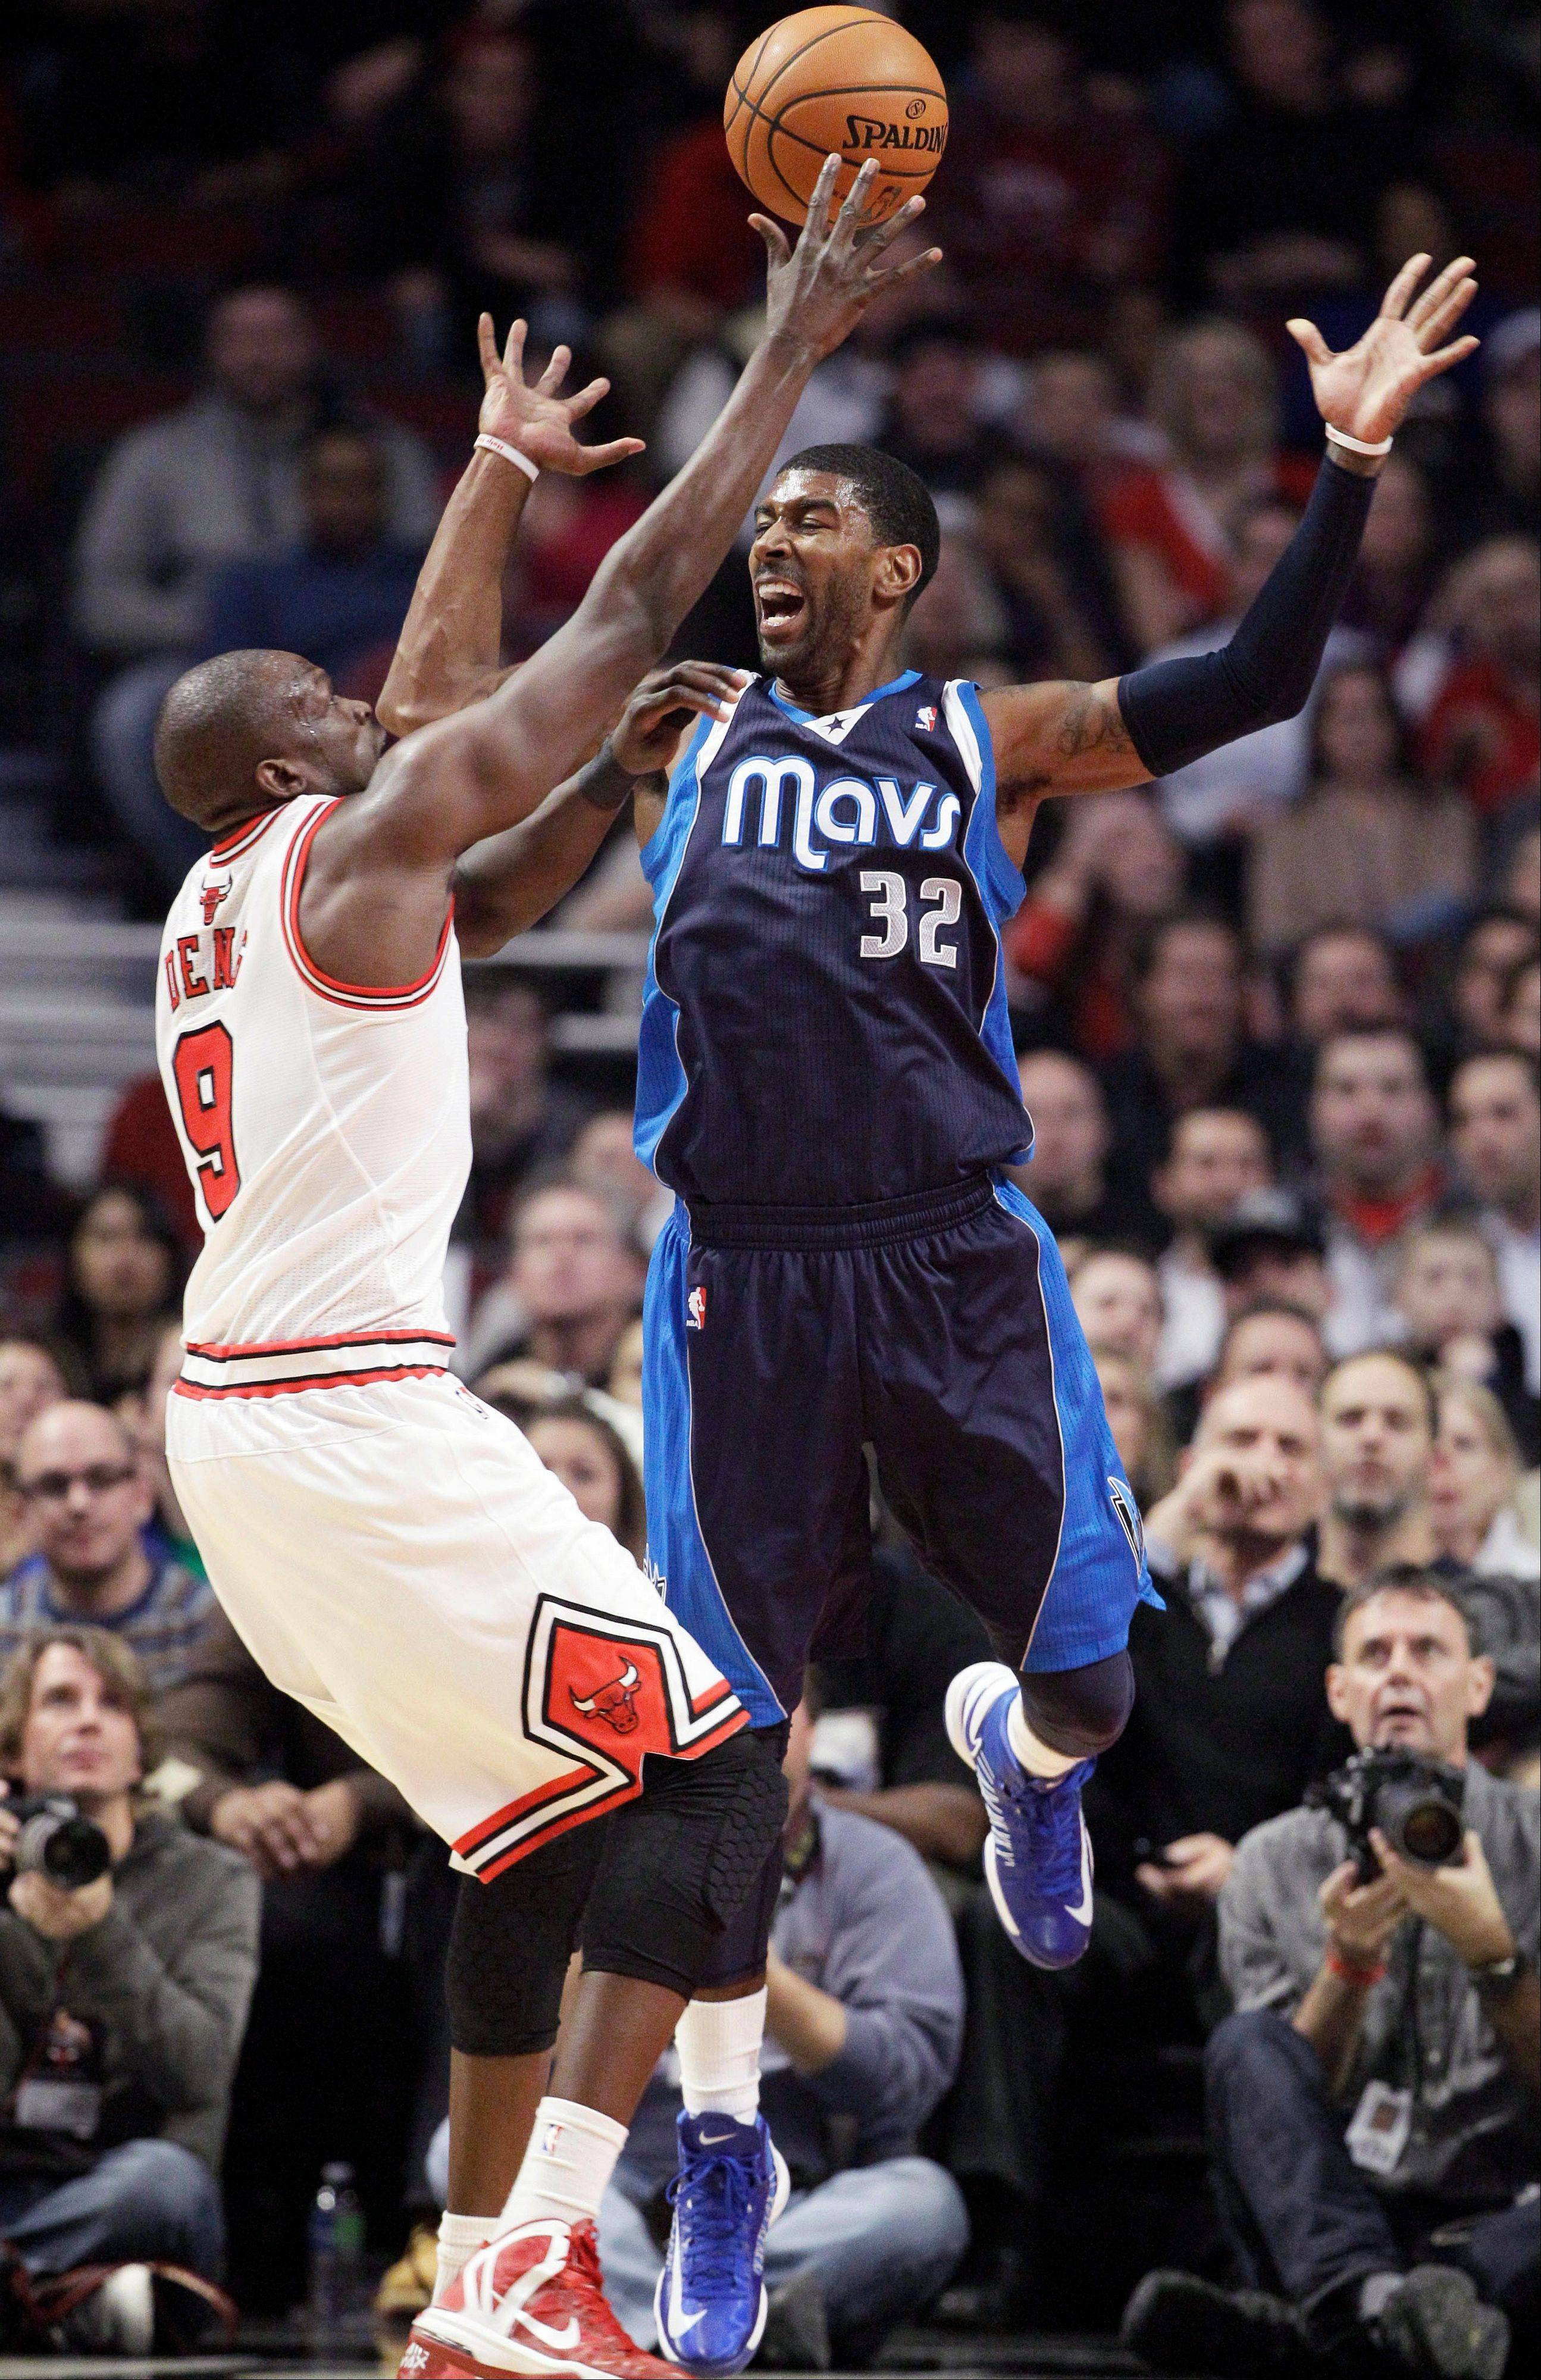 Bulls forward Luol Deng blocks a pass by Dallas Mavericks guard O.J. Mayo Wednesday during the first half at the United Center.